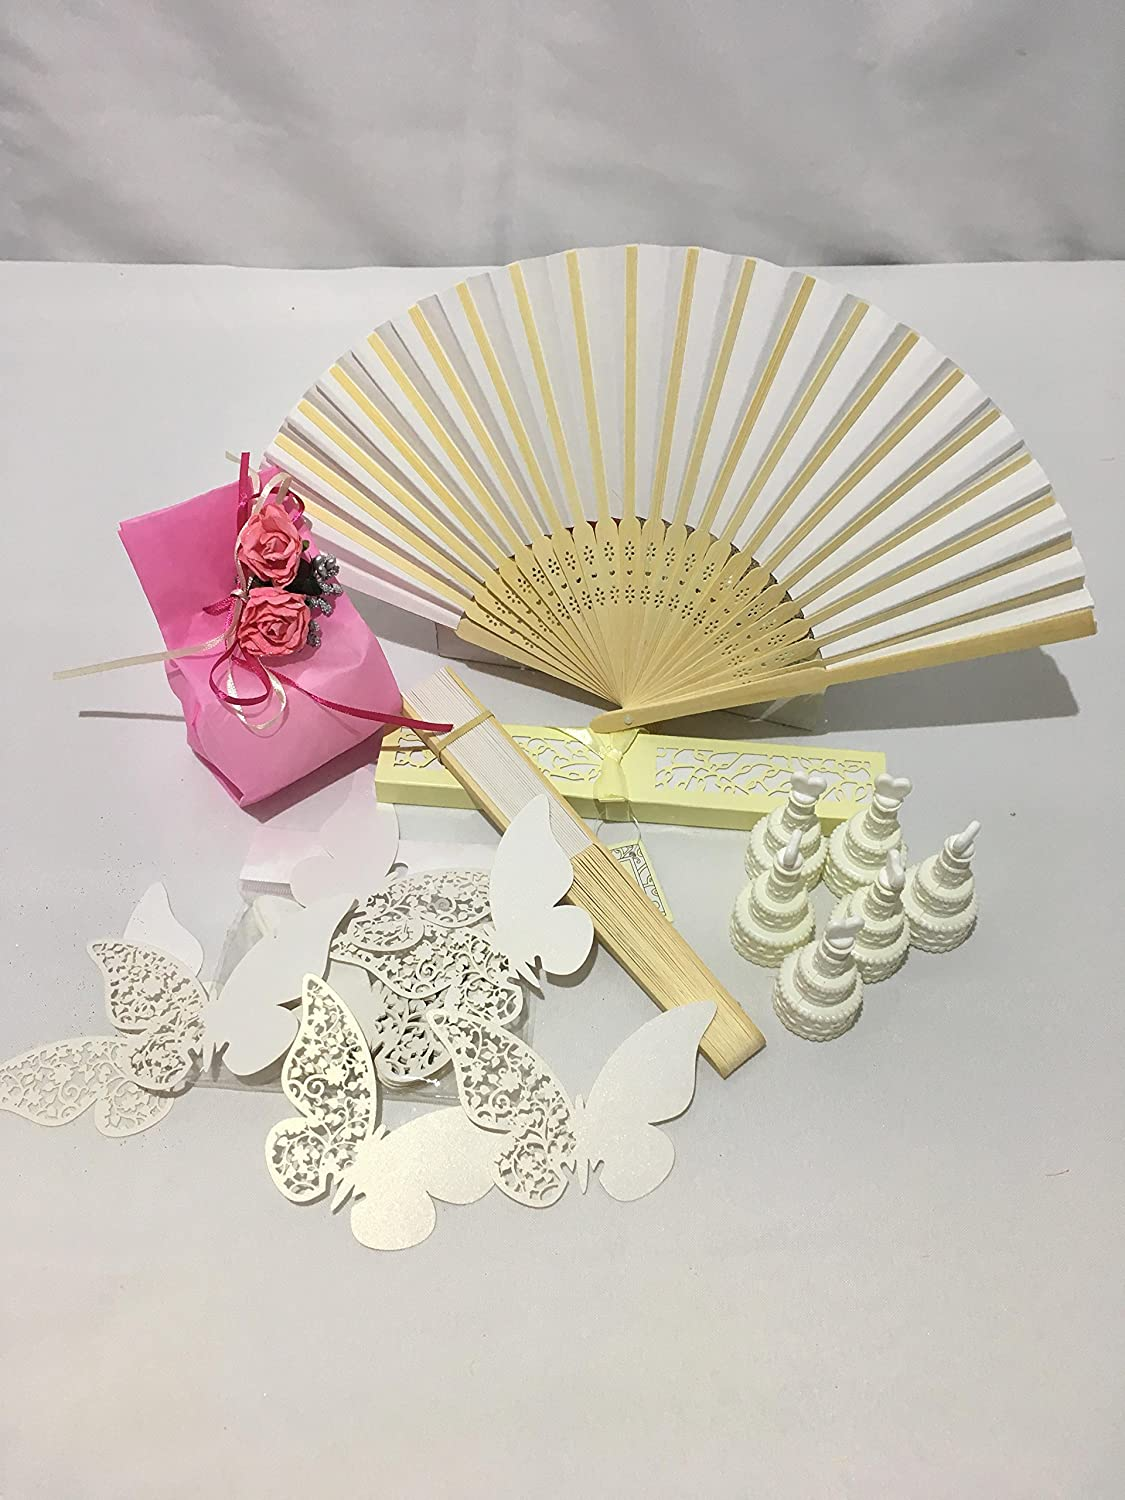 E-Randi Set For Weddings And Parties: 20 Fans With Case, 100 ...